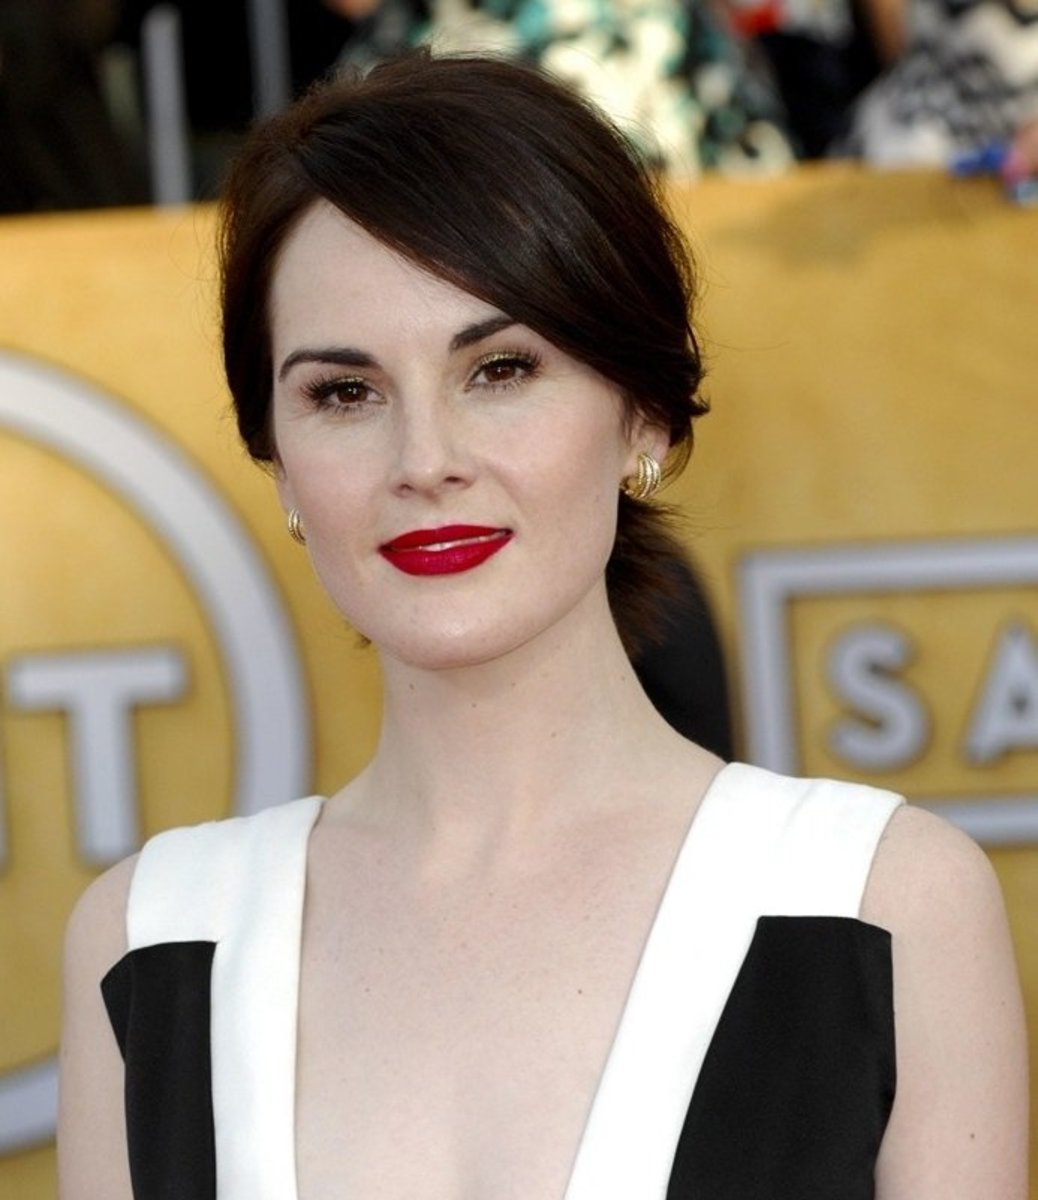 Michelle Dockery with dark red lipstick and alabaster skin